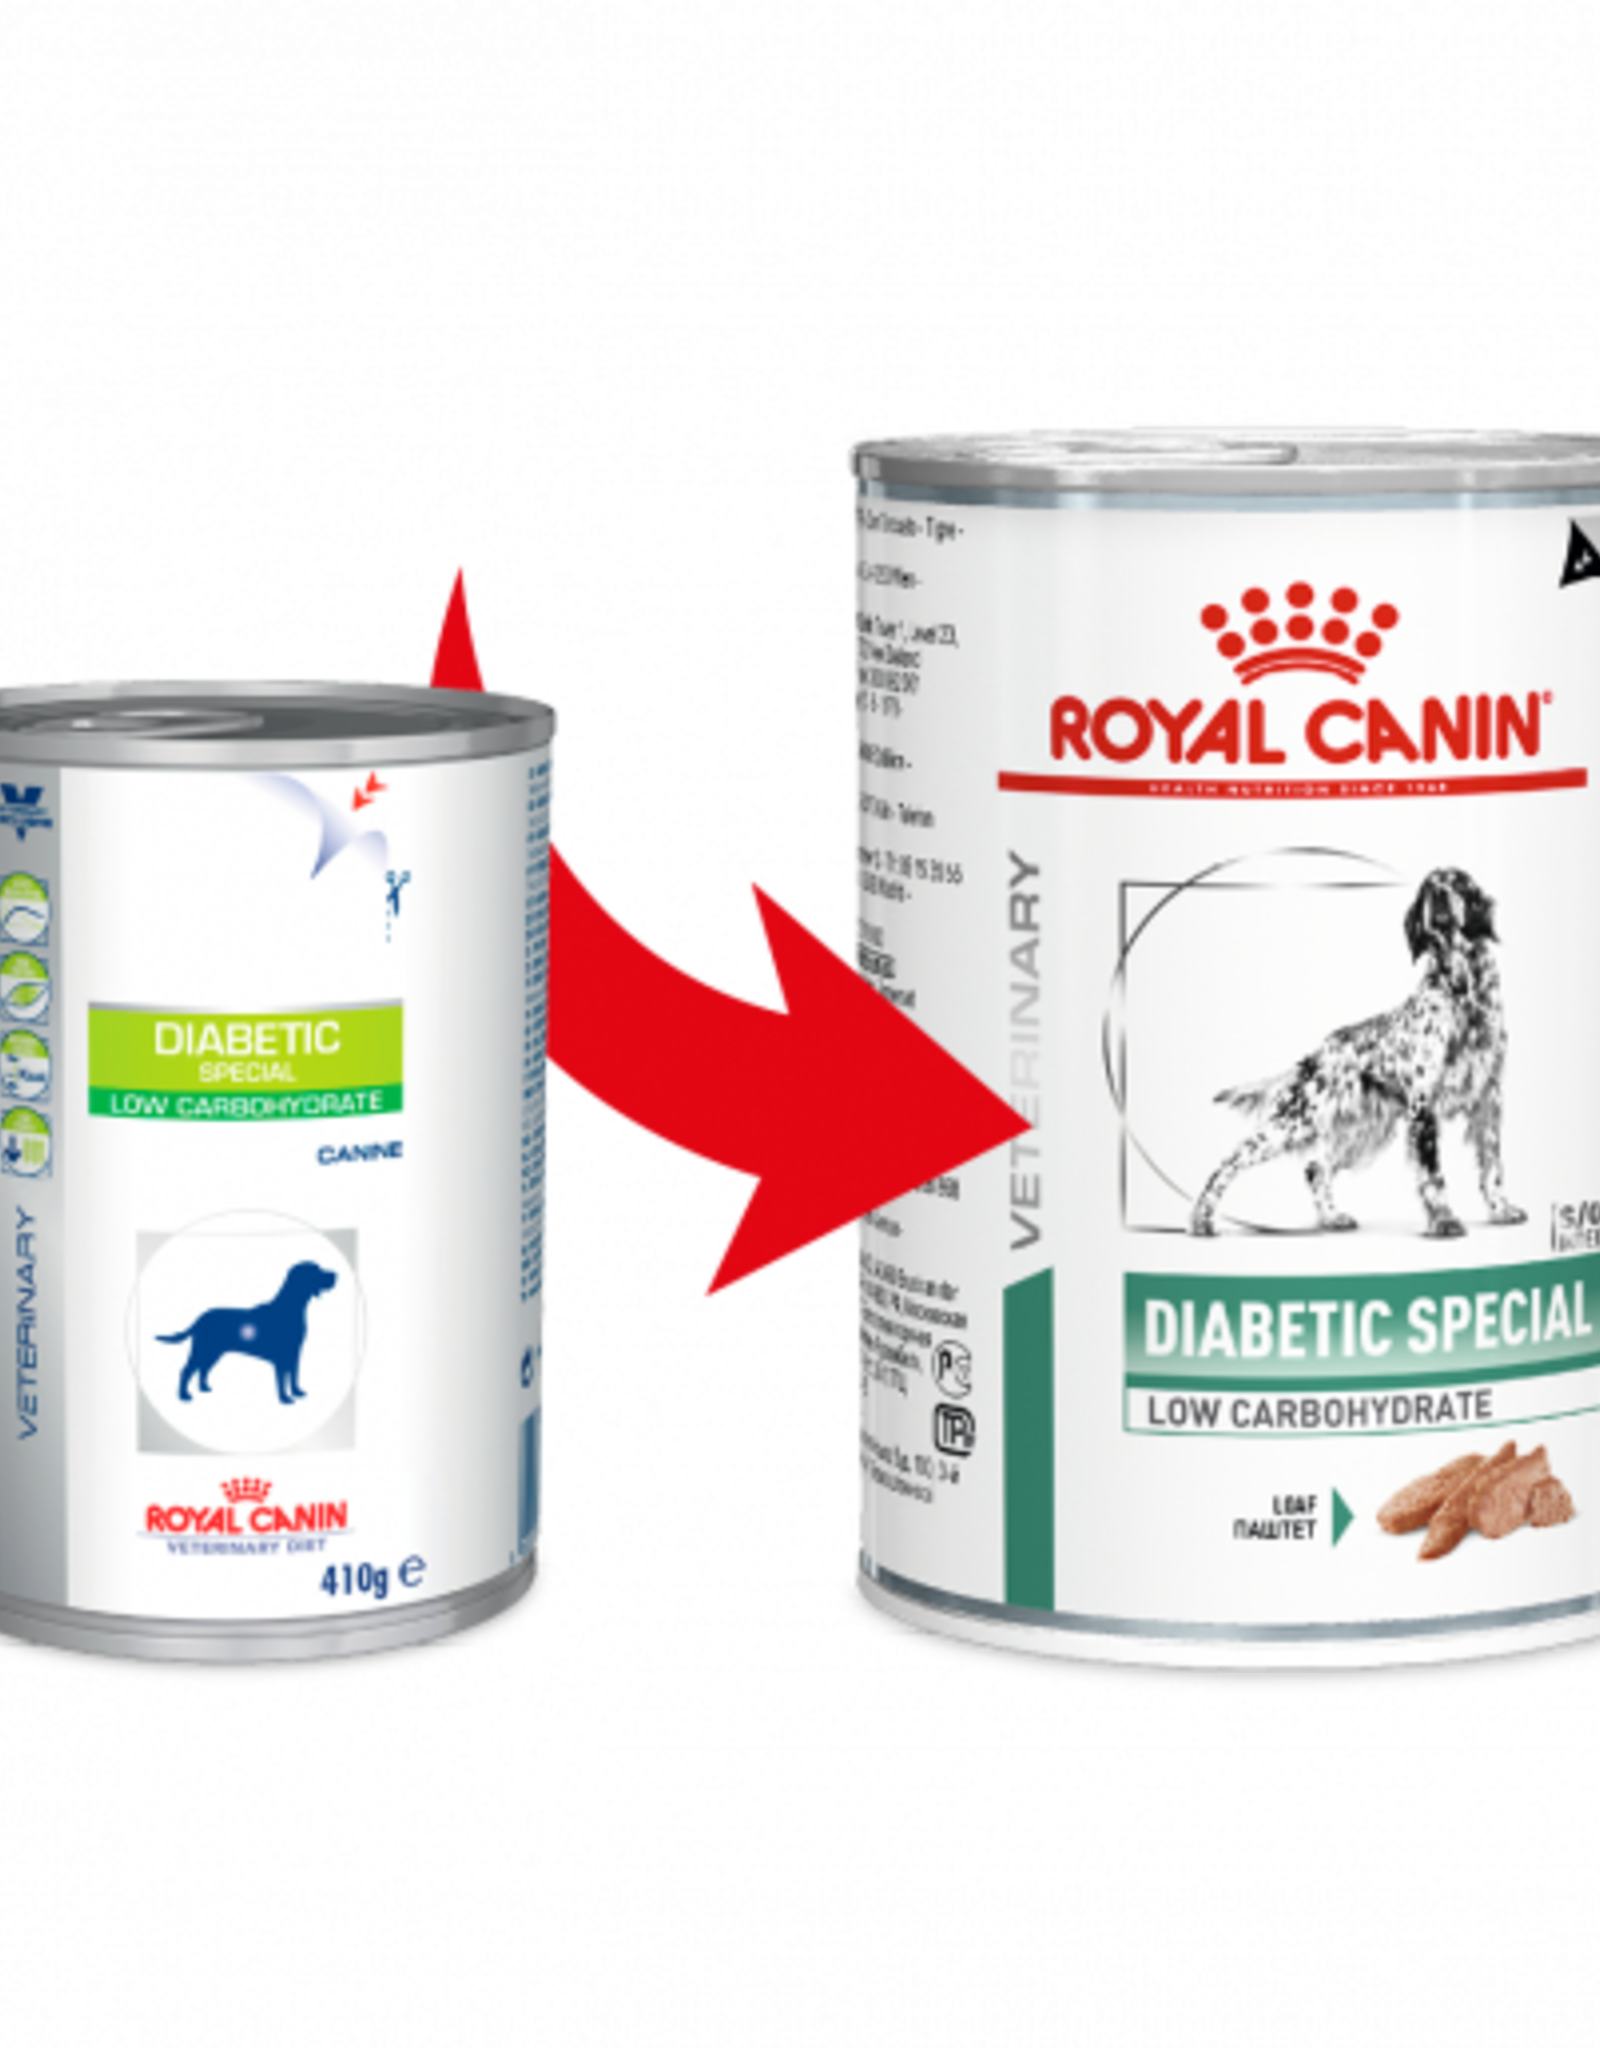 Royal Canin Royal Canin Vdiet Diabetic Low Carb Canine 12x410gr